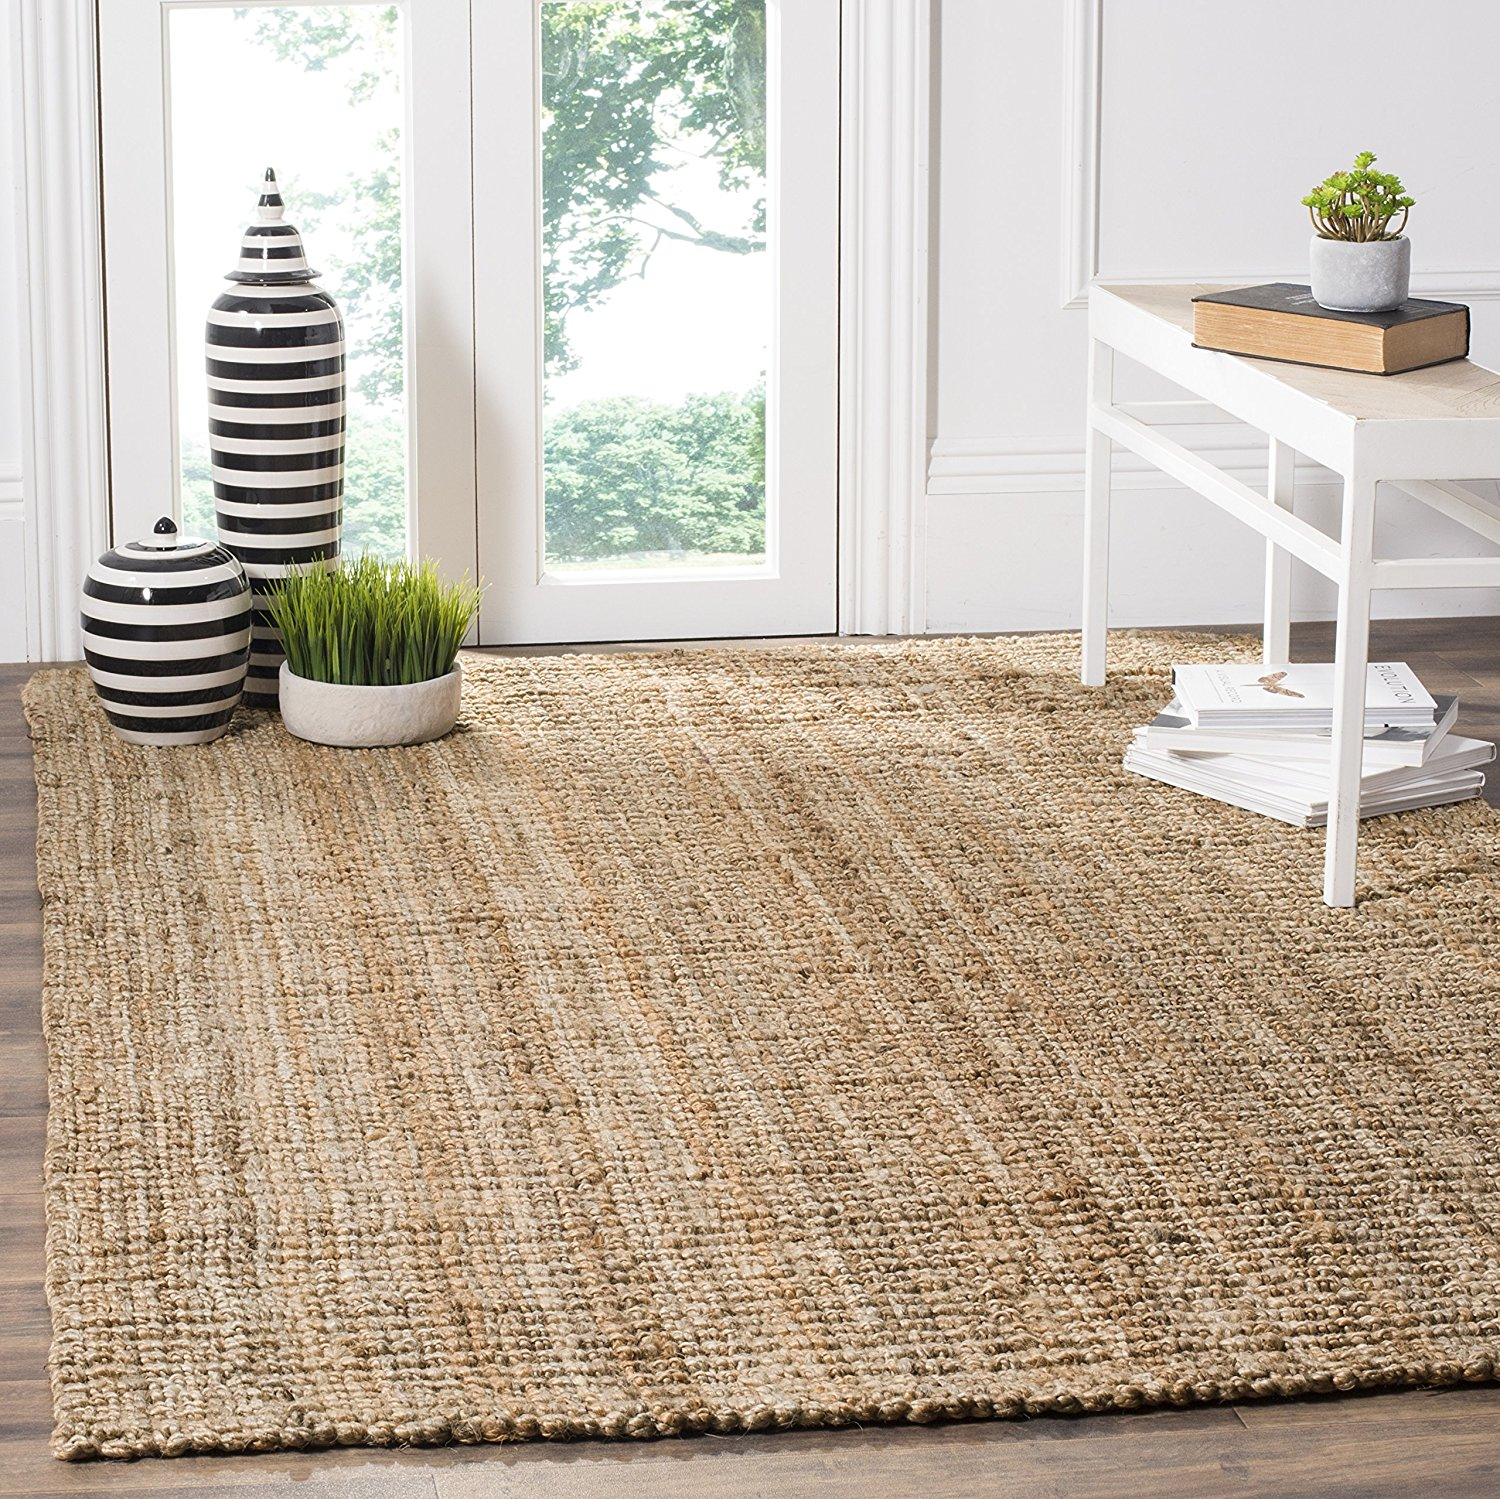 Safavieh Natural Fiber Collection NF447A Hand Woven Natural Jute Area Rug (8' x 10')